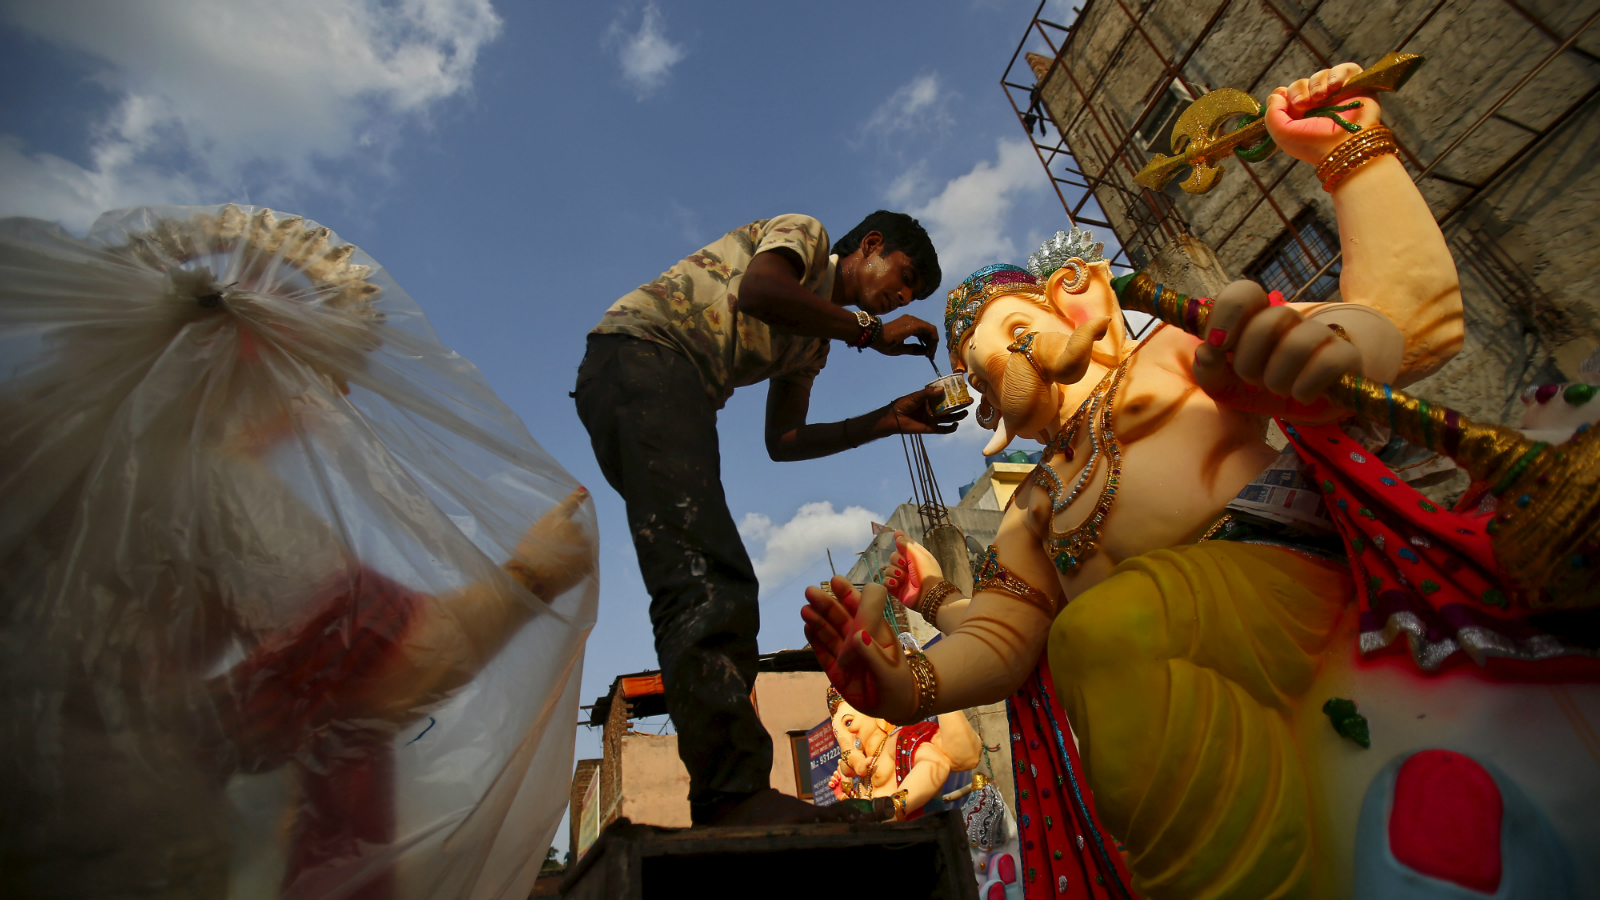 An artisan works on an idol of Hindu elephant god Ganesh, the deity of prosperity, at a roadside workshop in New Delhi, India, August 31, 2015. Work on Ganesh idols usually begins two to three months before Ganesh Chaturthi, a popular religious festival in India that will be held in September this year. During the festival the idols will be taken through the streets in a procession accompanied by dancing and singing, and to be immersed in a river or the sea in accordance with the Hindu faith. REUTERS/Anindito Mukherjee